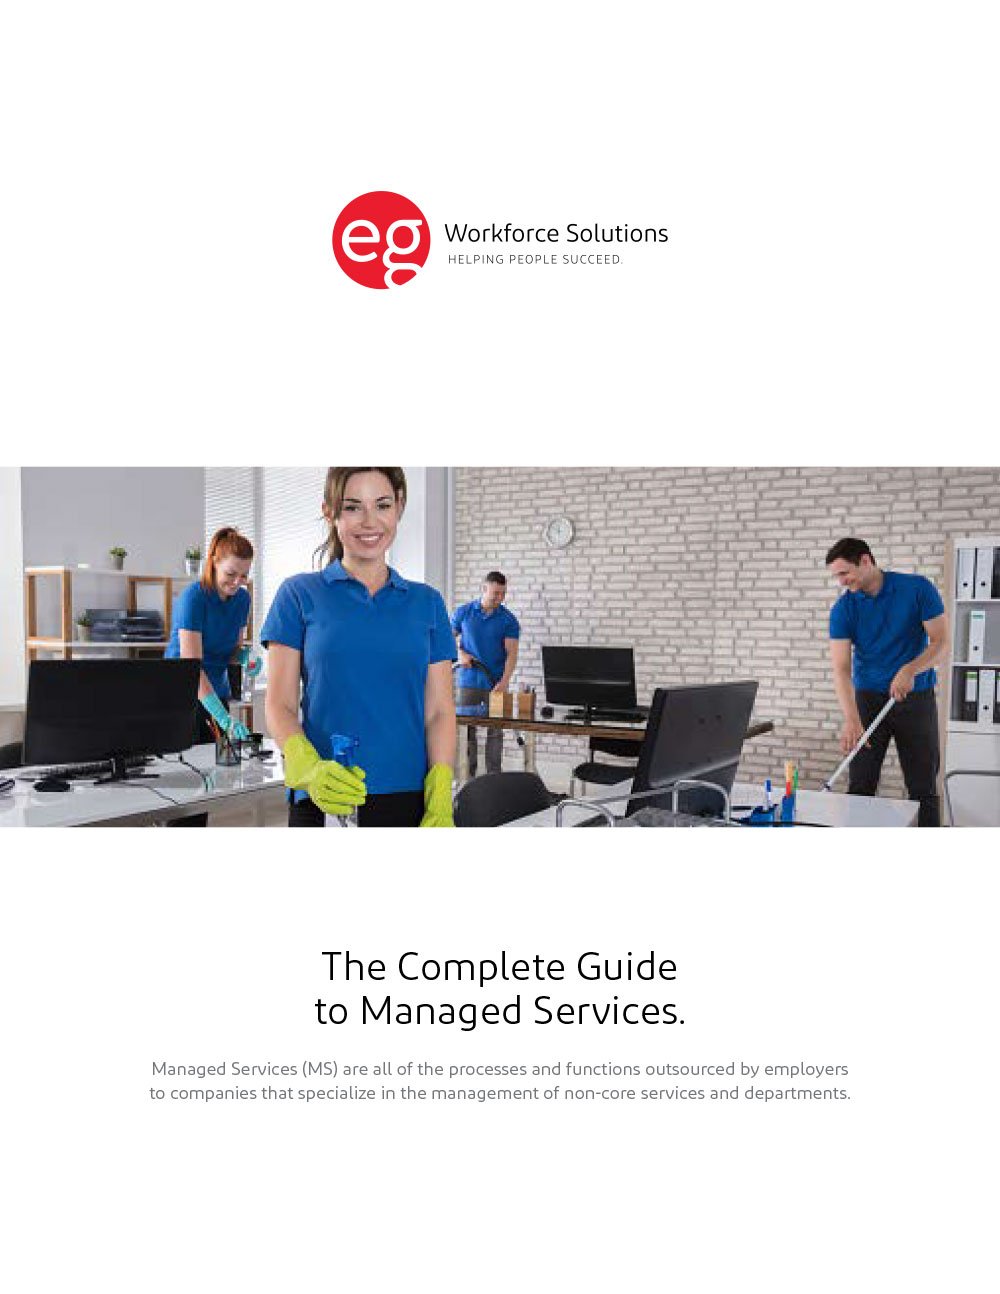 The Complete Guide to Managed Services